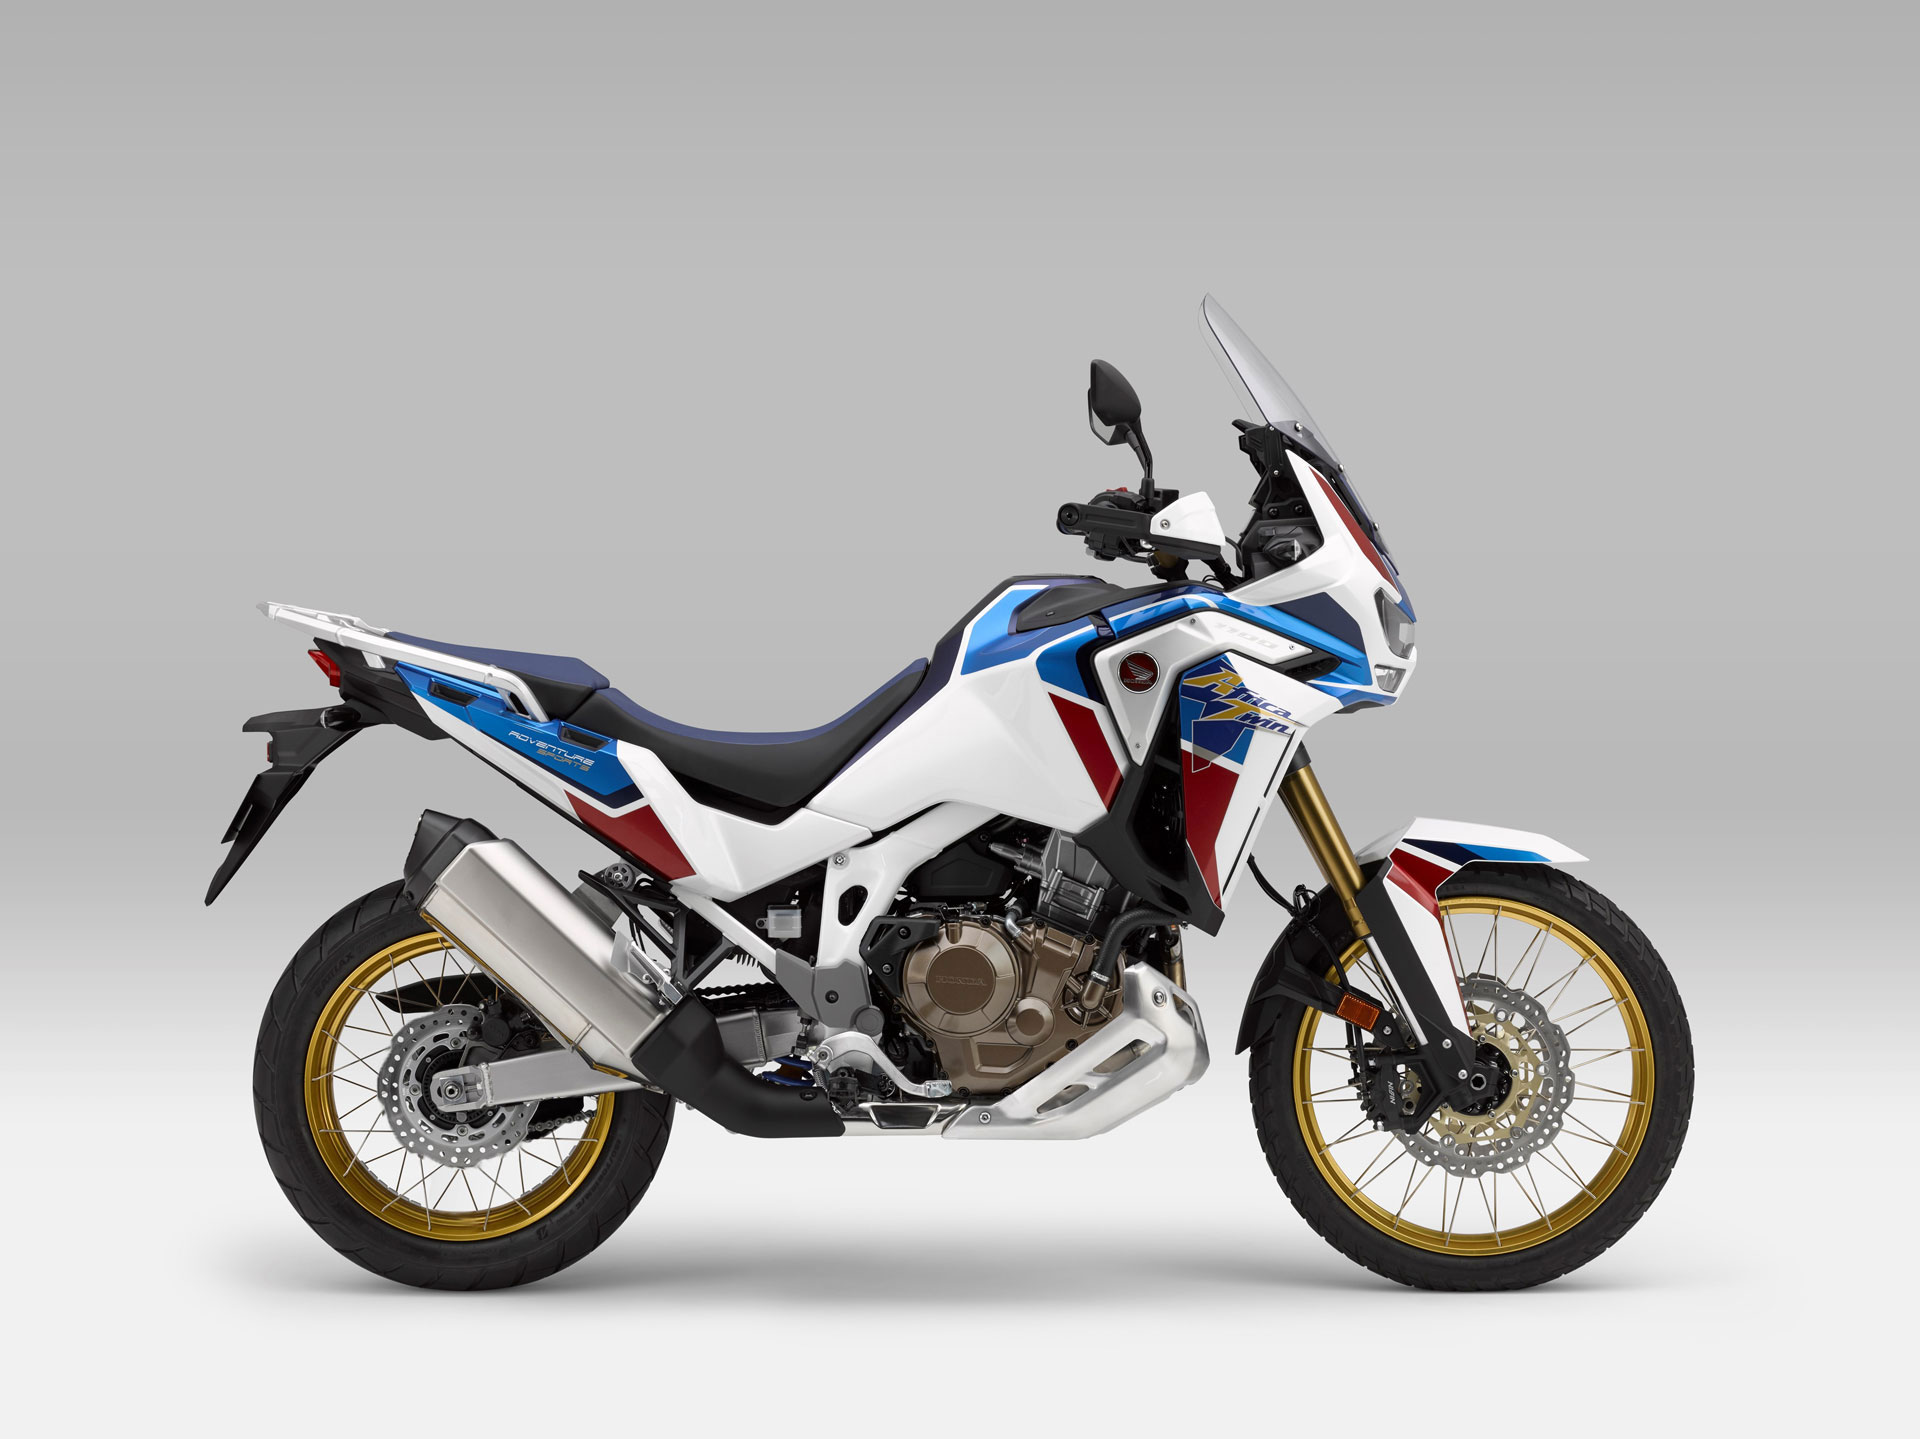 CRF 1100 L Africa Twin Adventure Sports SE